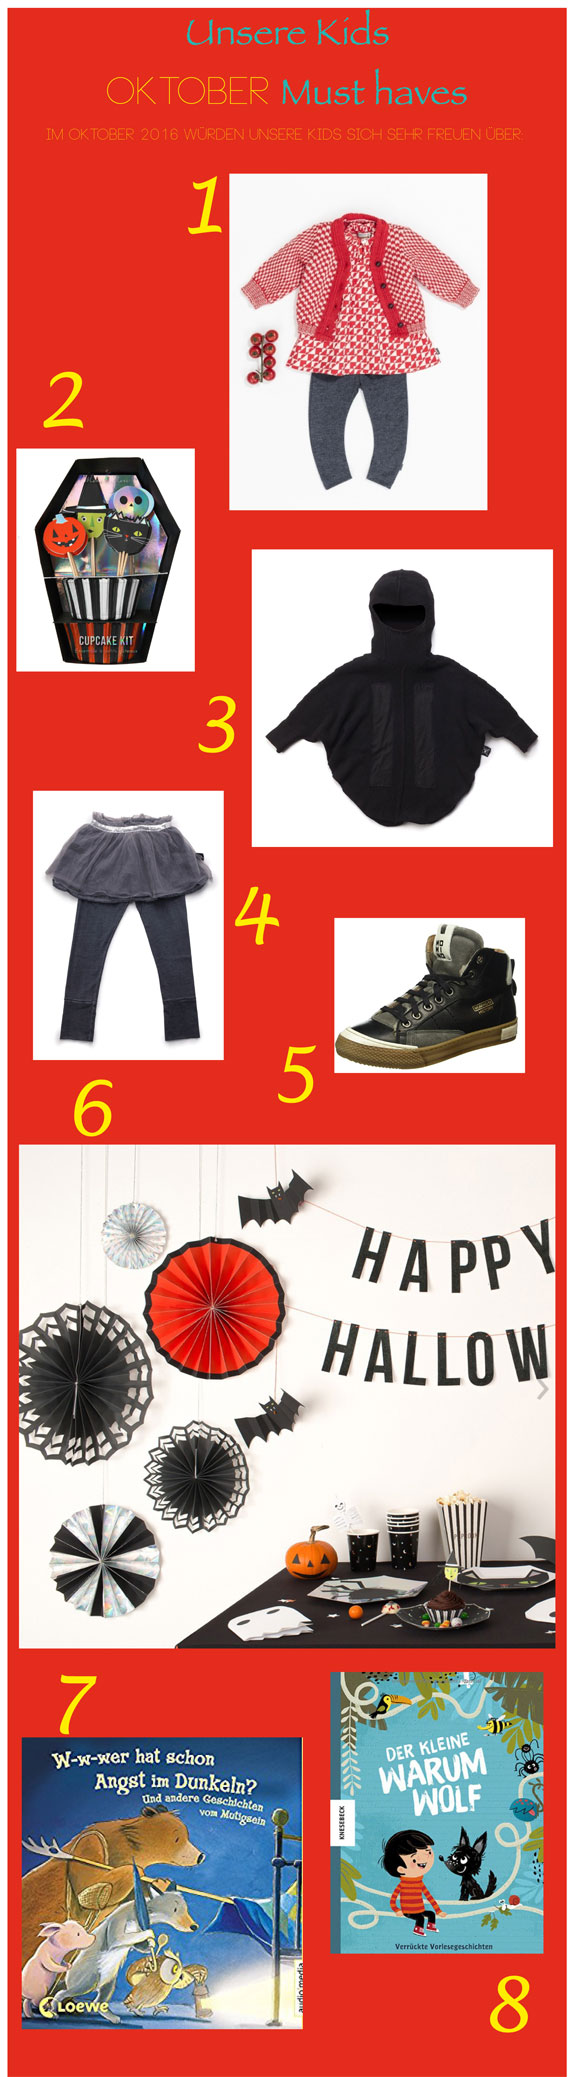 Oktober-Kids-Must-haves-2016